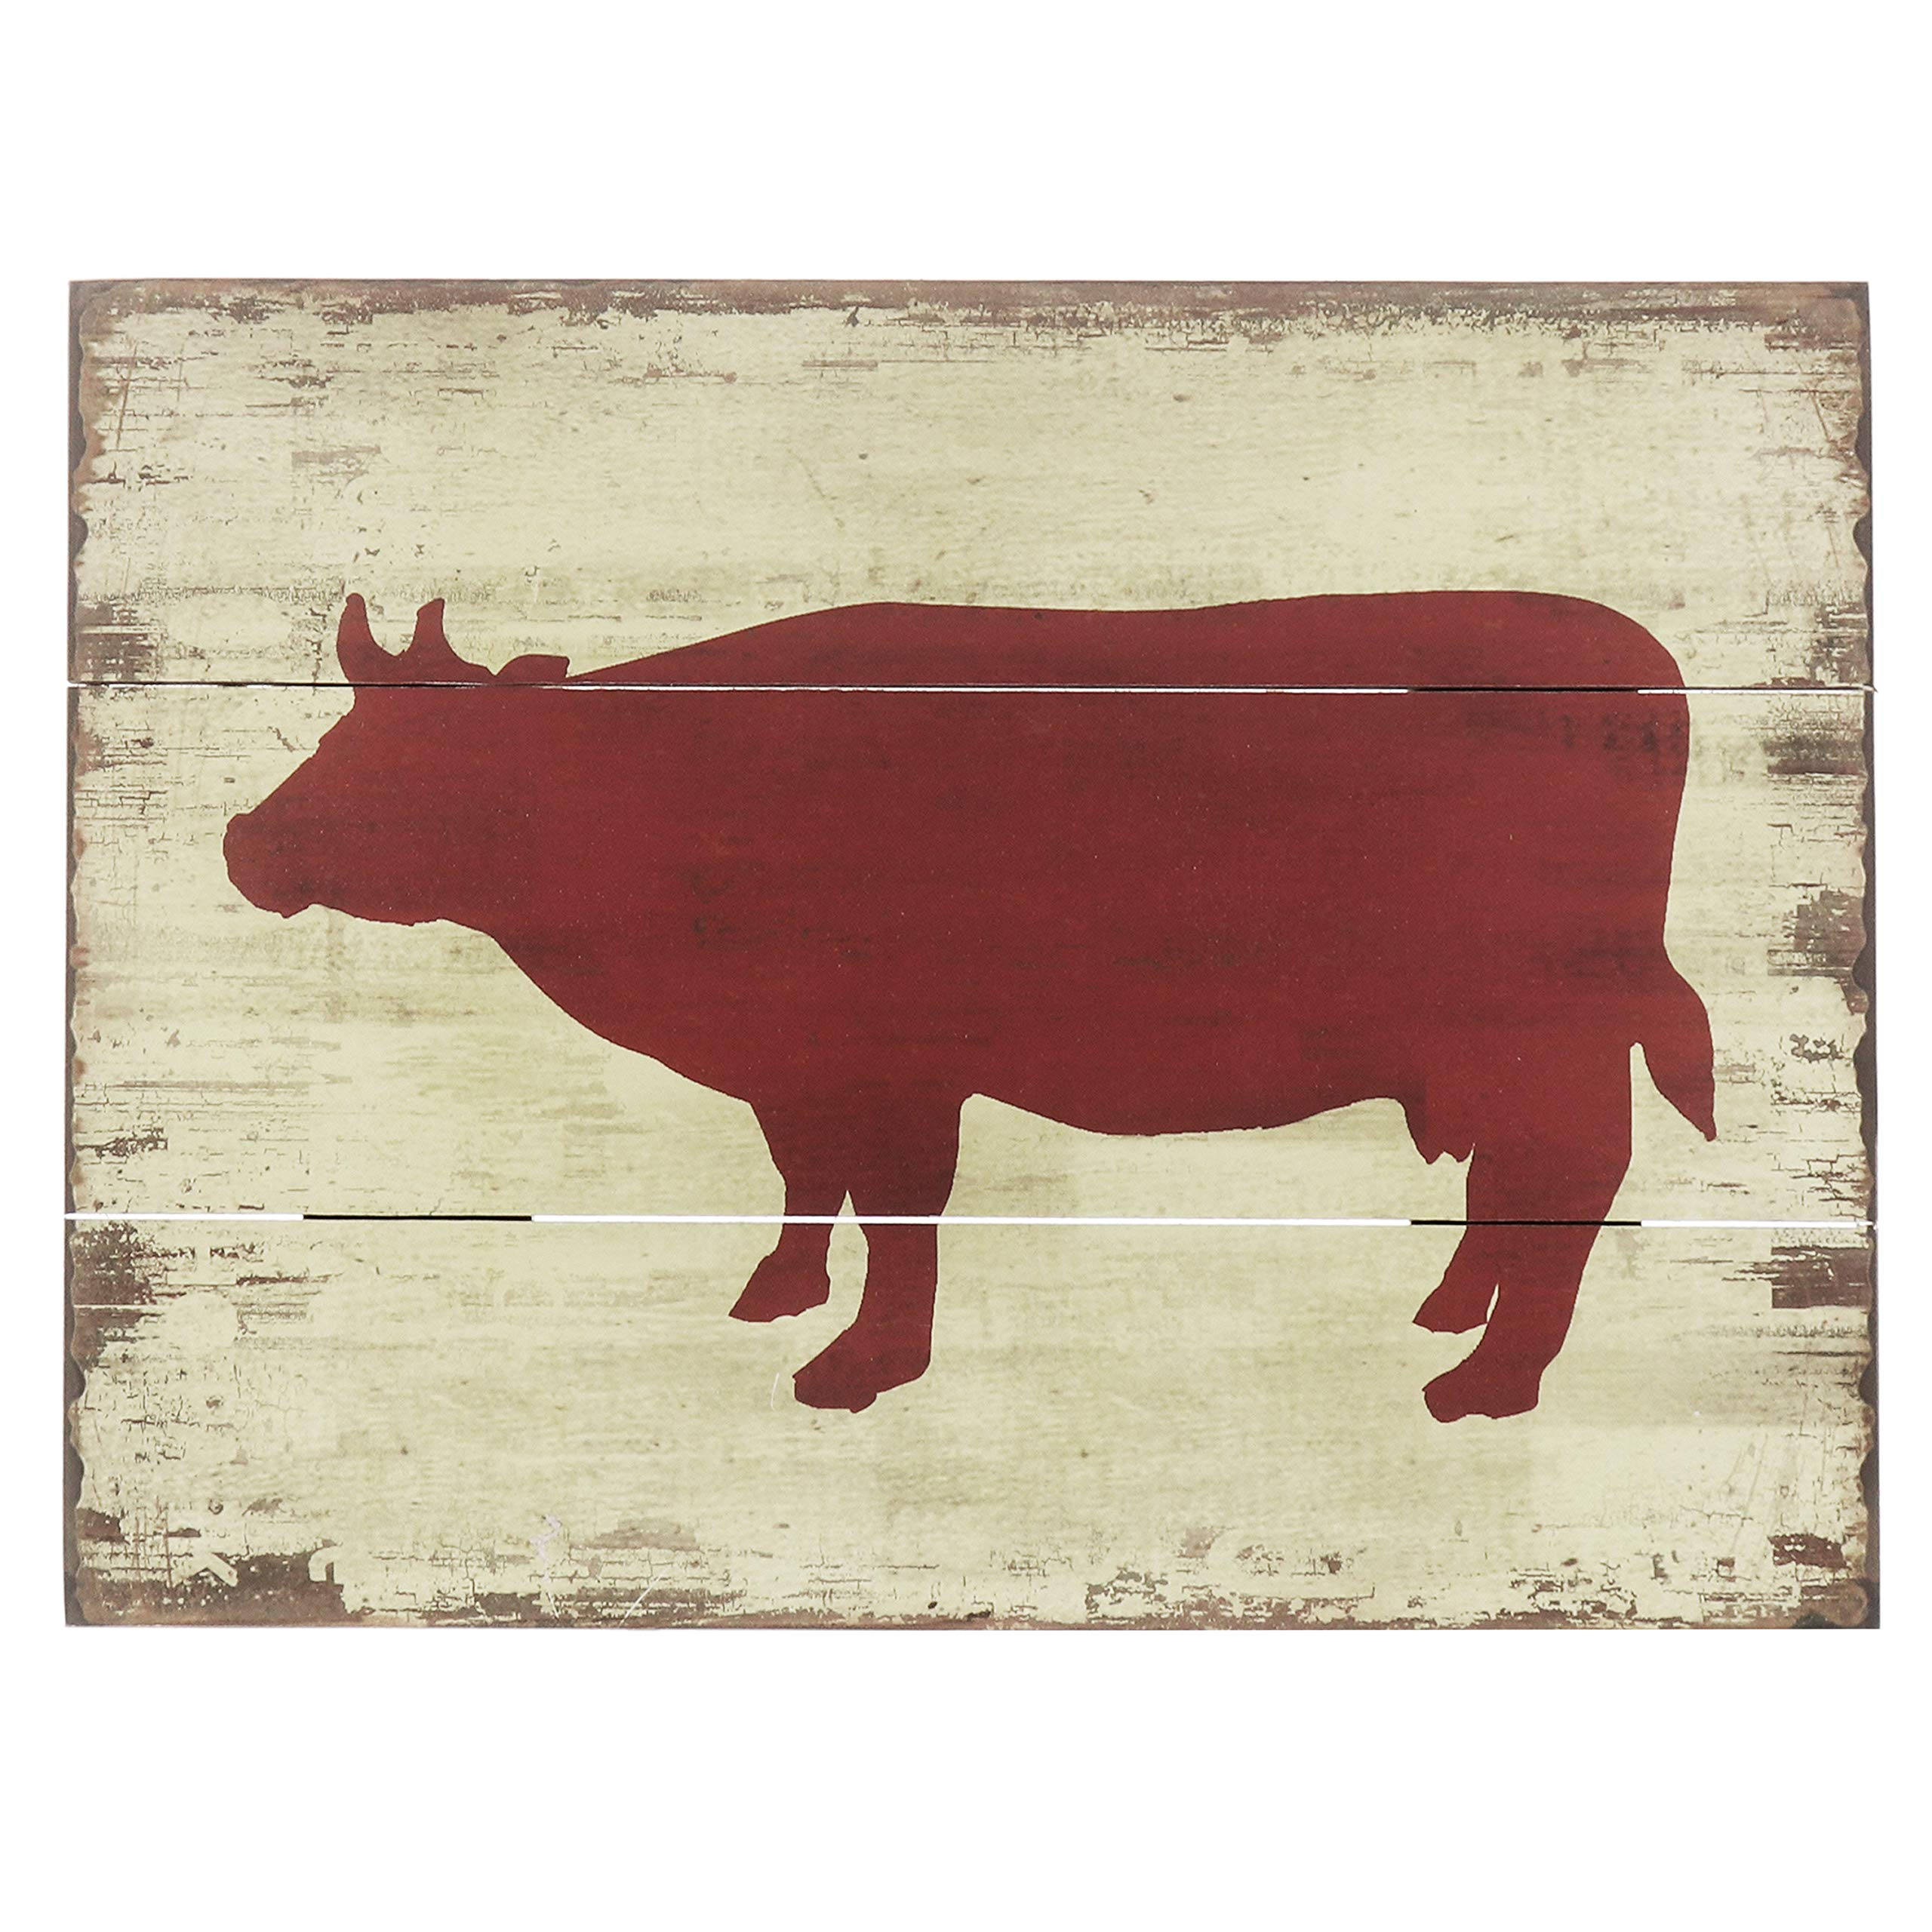 Barnyard Designs Red Cow Silhouette Retro Vintage Wooden Plaque Bar Sign Country Home Decor 15.75'' x 11.75''